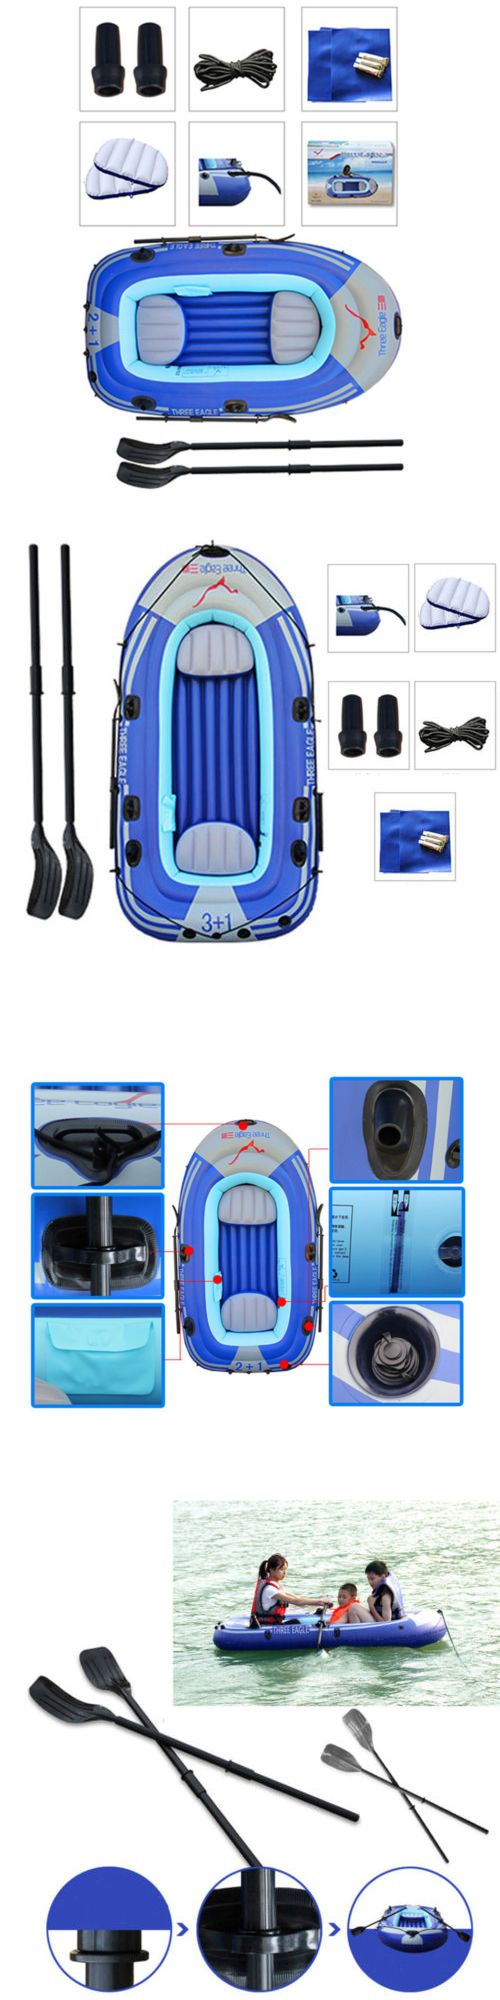 Inflatables 87090: 3 Person 7.7Ft Inflatable Kayak Fishing Raft Pontoon Boat Canoe Dinghy 2 Oars Us -> BUY IT NOW ONLY: $52.07 on eBay!